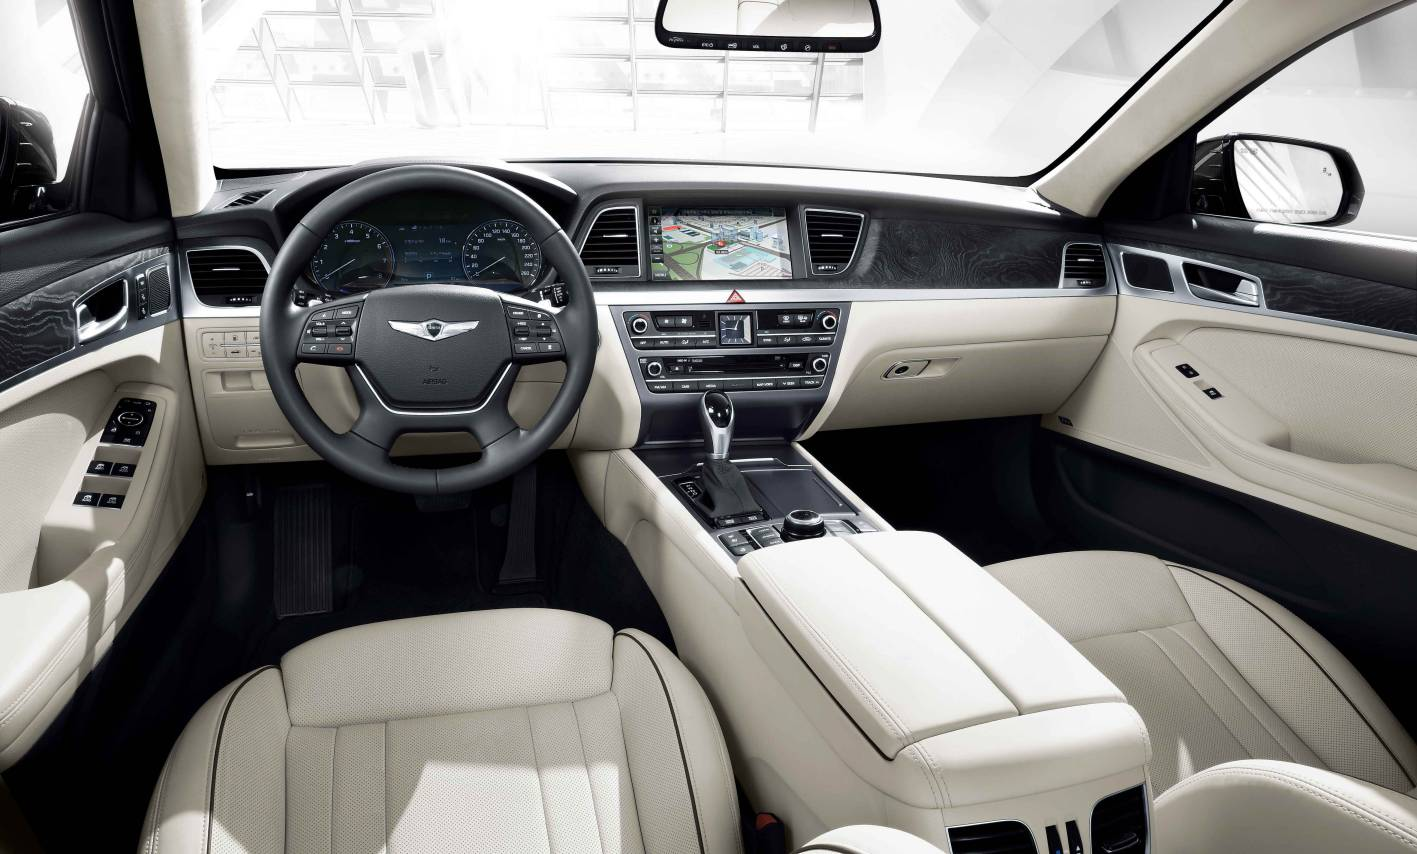 2014 Hyundai Genesis sedan interior dashboard - ForceGT.com